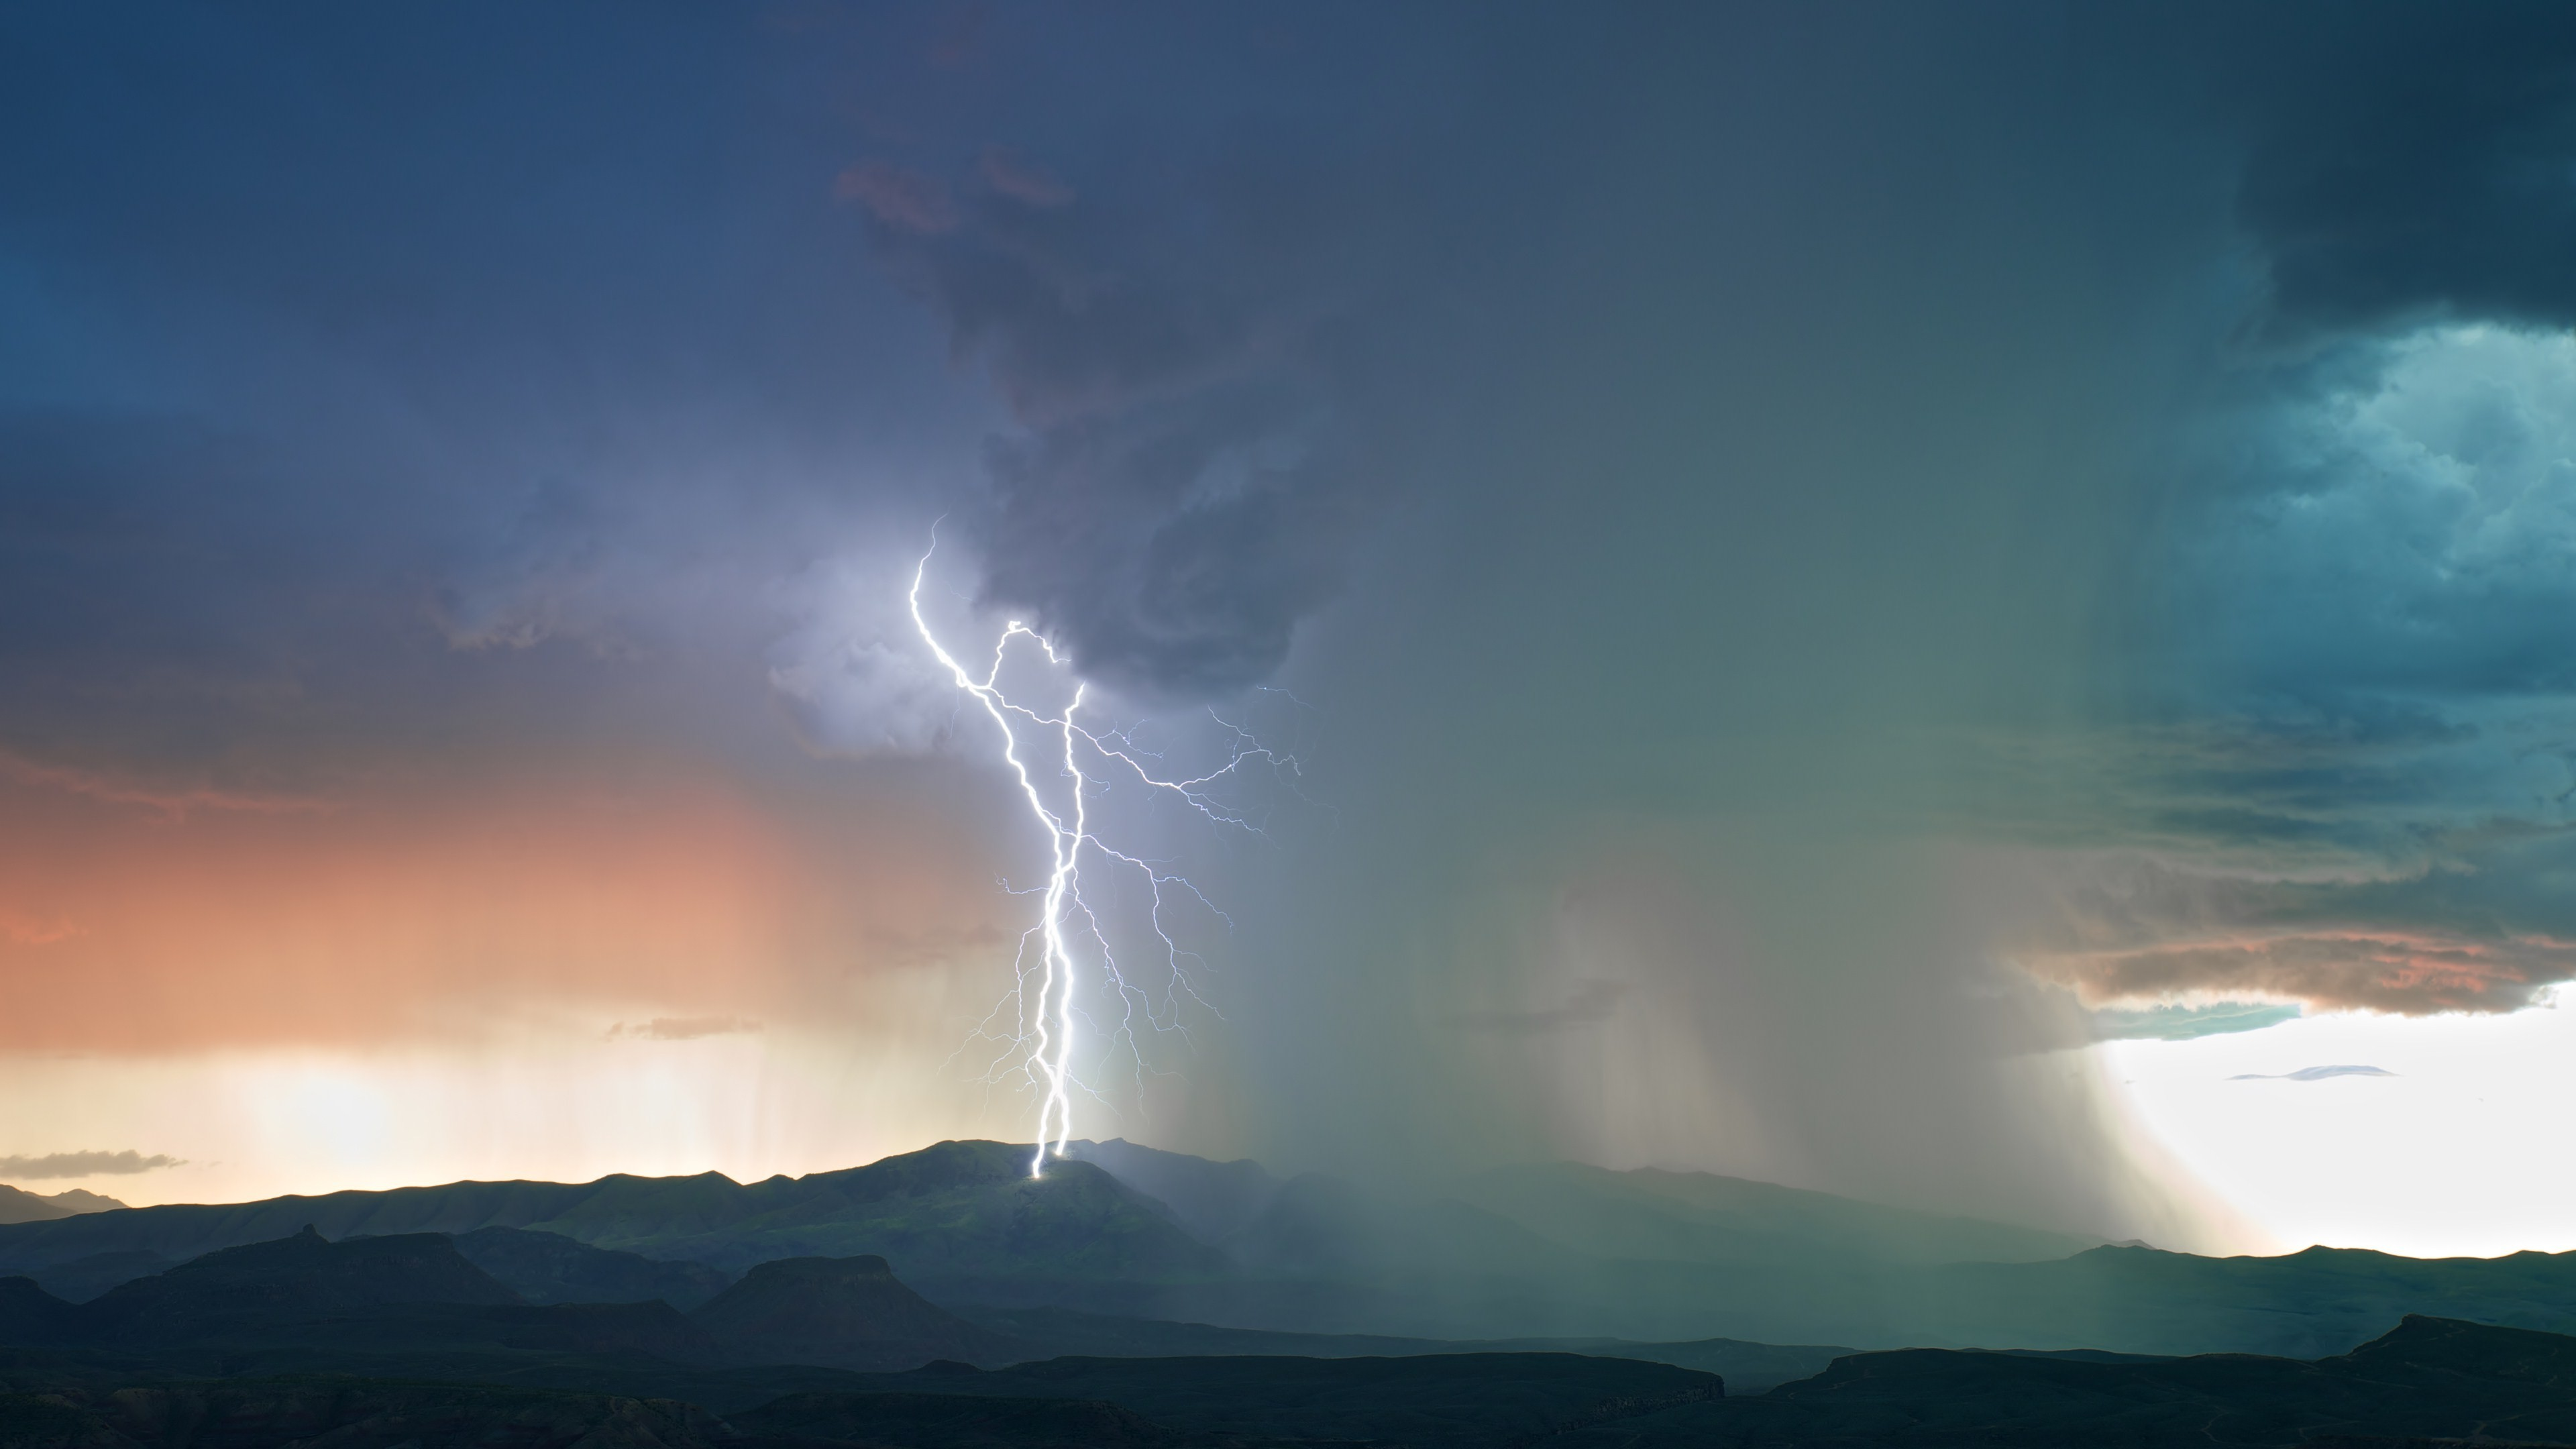 nature, Landscape, Clouds, Sky, Lightning, Storm, Rain, Hill, Mountain  Wallpapers HD / Desktop and Mobile Backgrounds